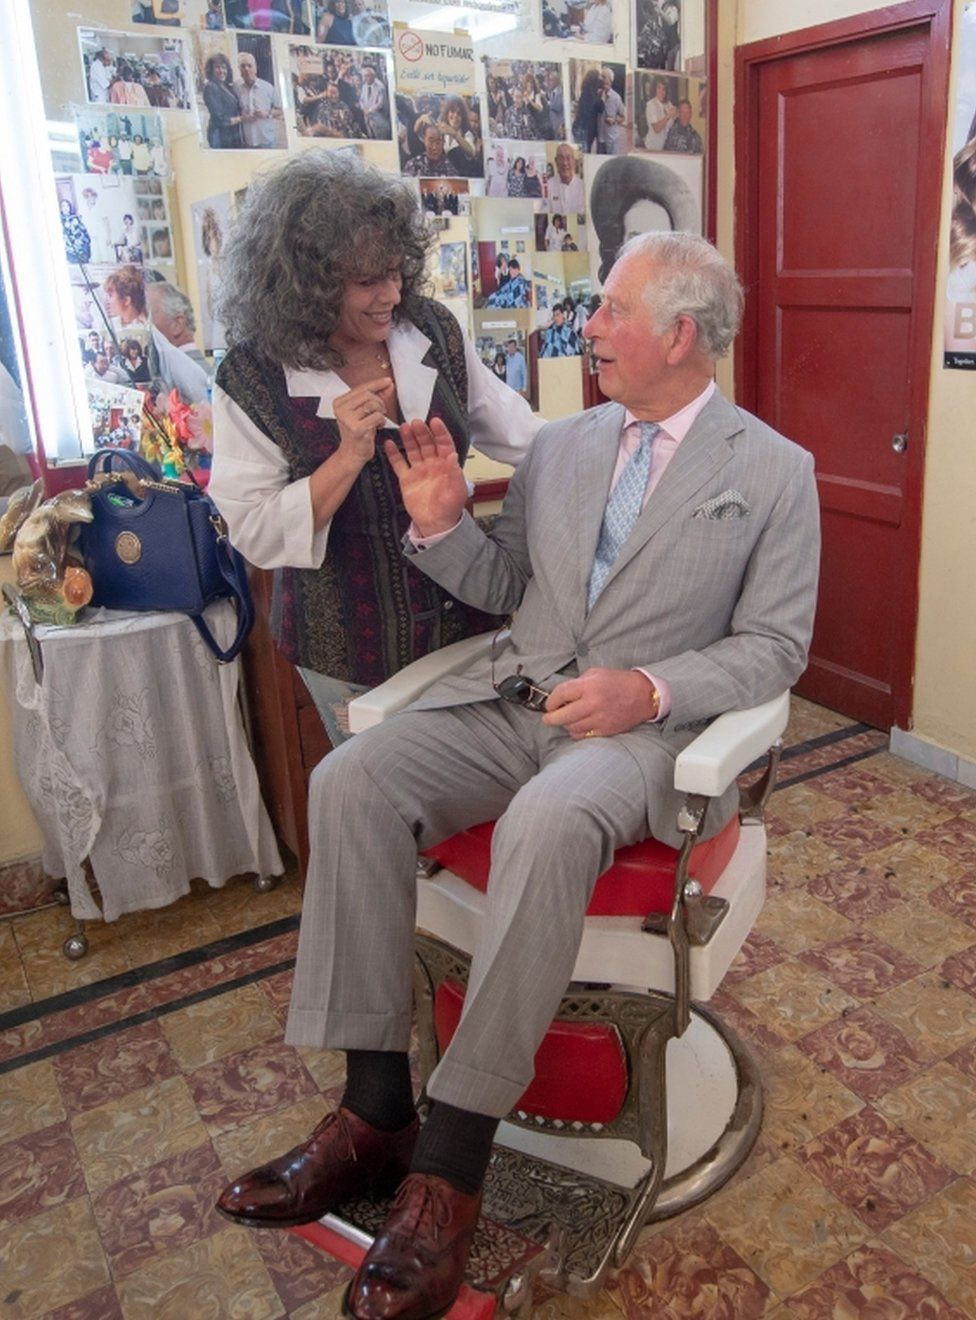 Prince Charles sat in the Barbers chair